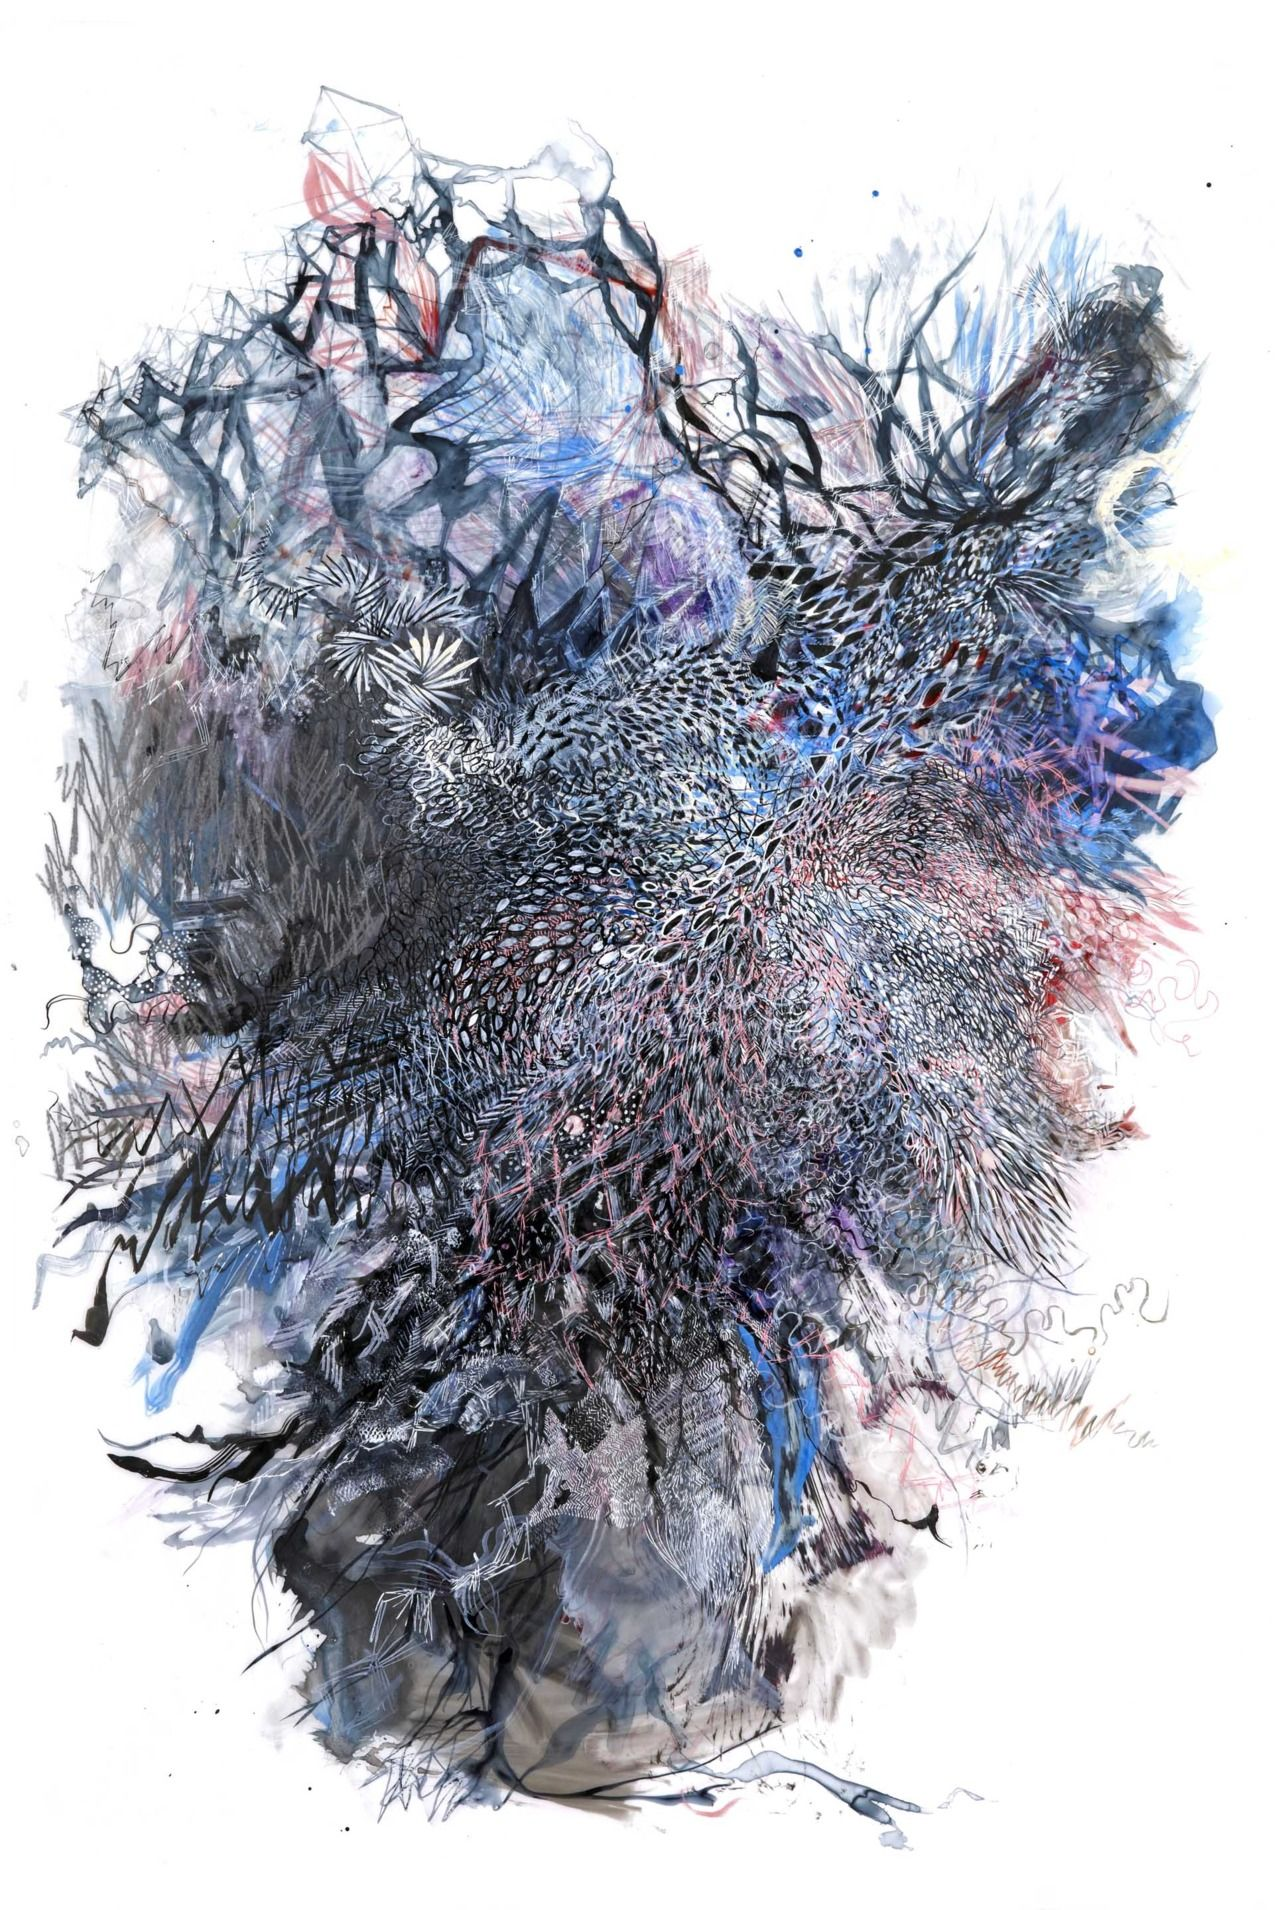 """Second Nature 10, 36 by 24"""", Ink, graphite and gouache on mylar"""